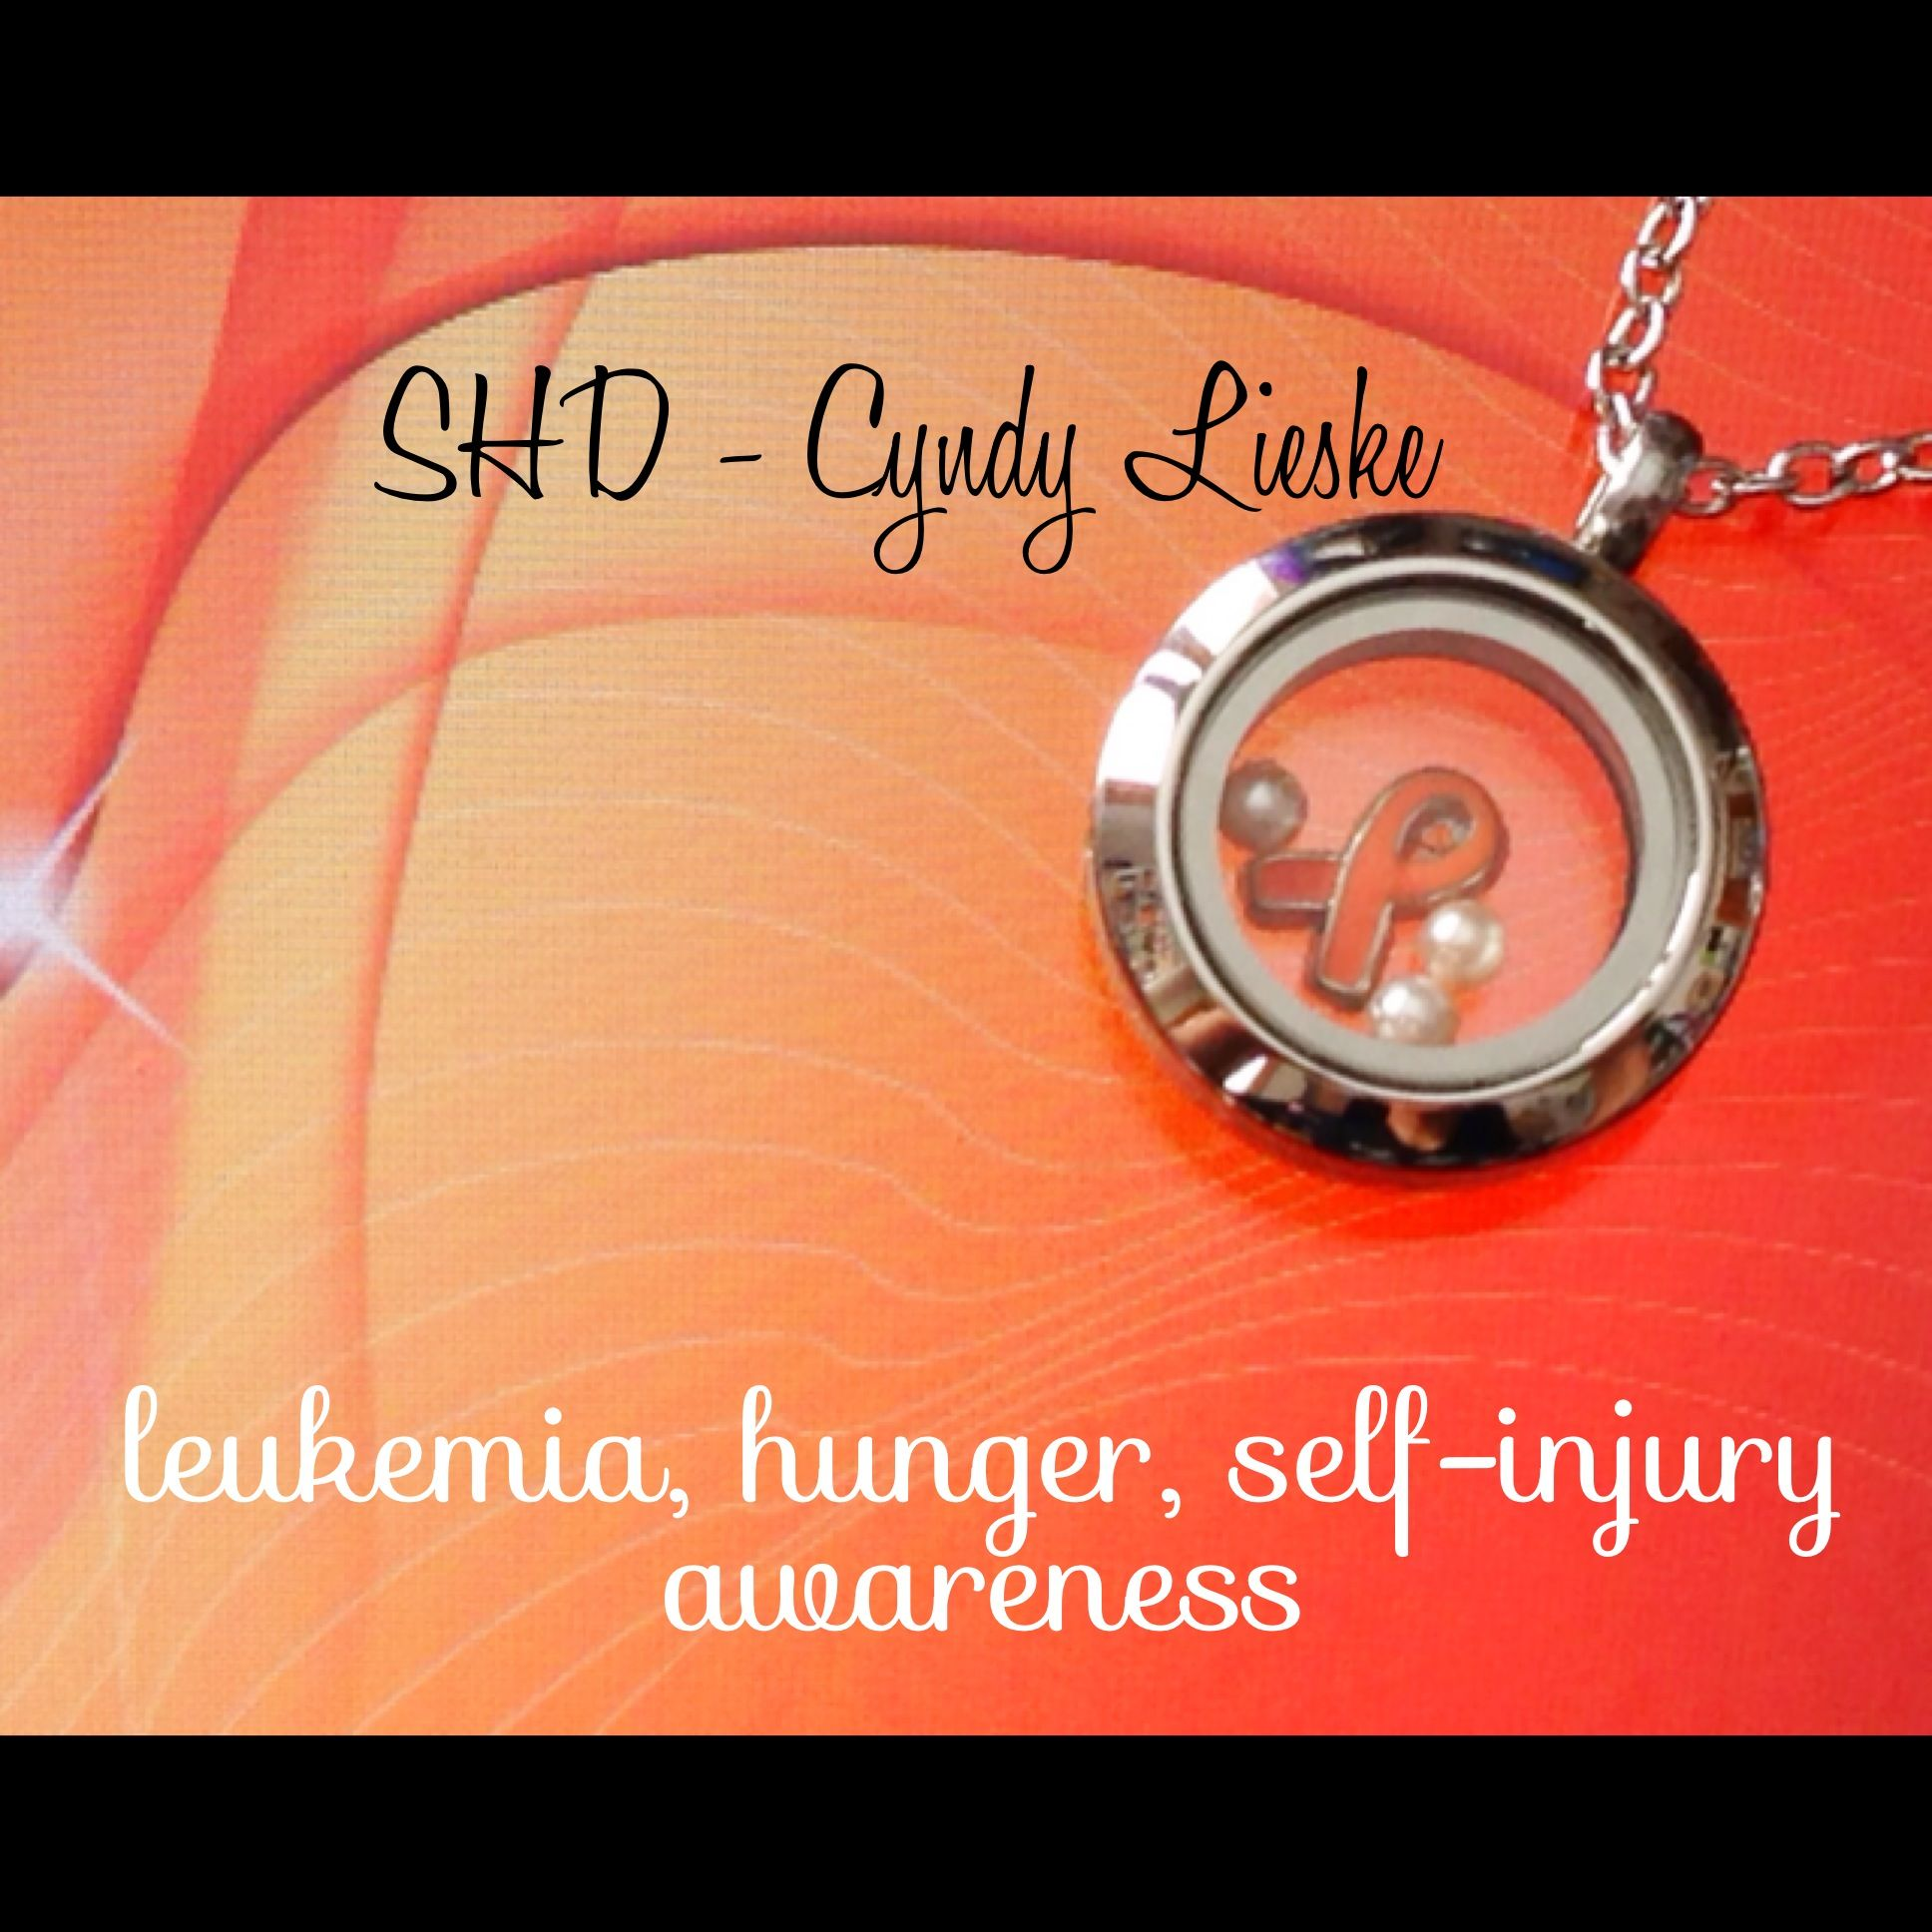 crystal jewelry cancer orange ribbon awareness necklace bracelet leukemia amazon dp pendant com bow kidney